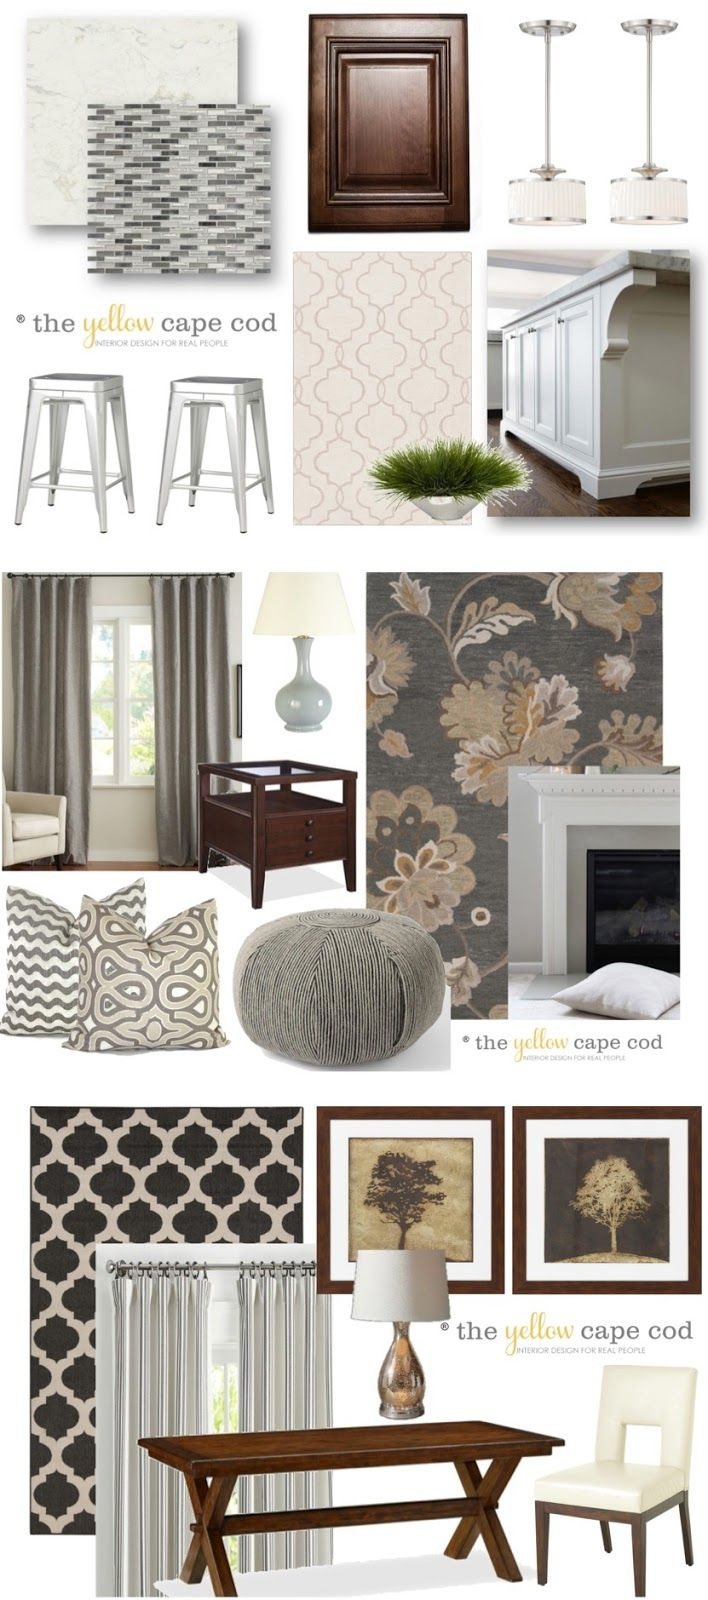 The Yellow Cape Cod Gray Tan Transitional Style Multiroom Design Part I